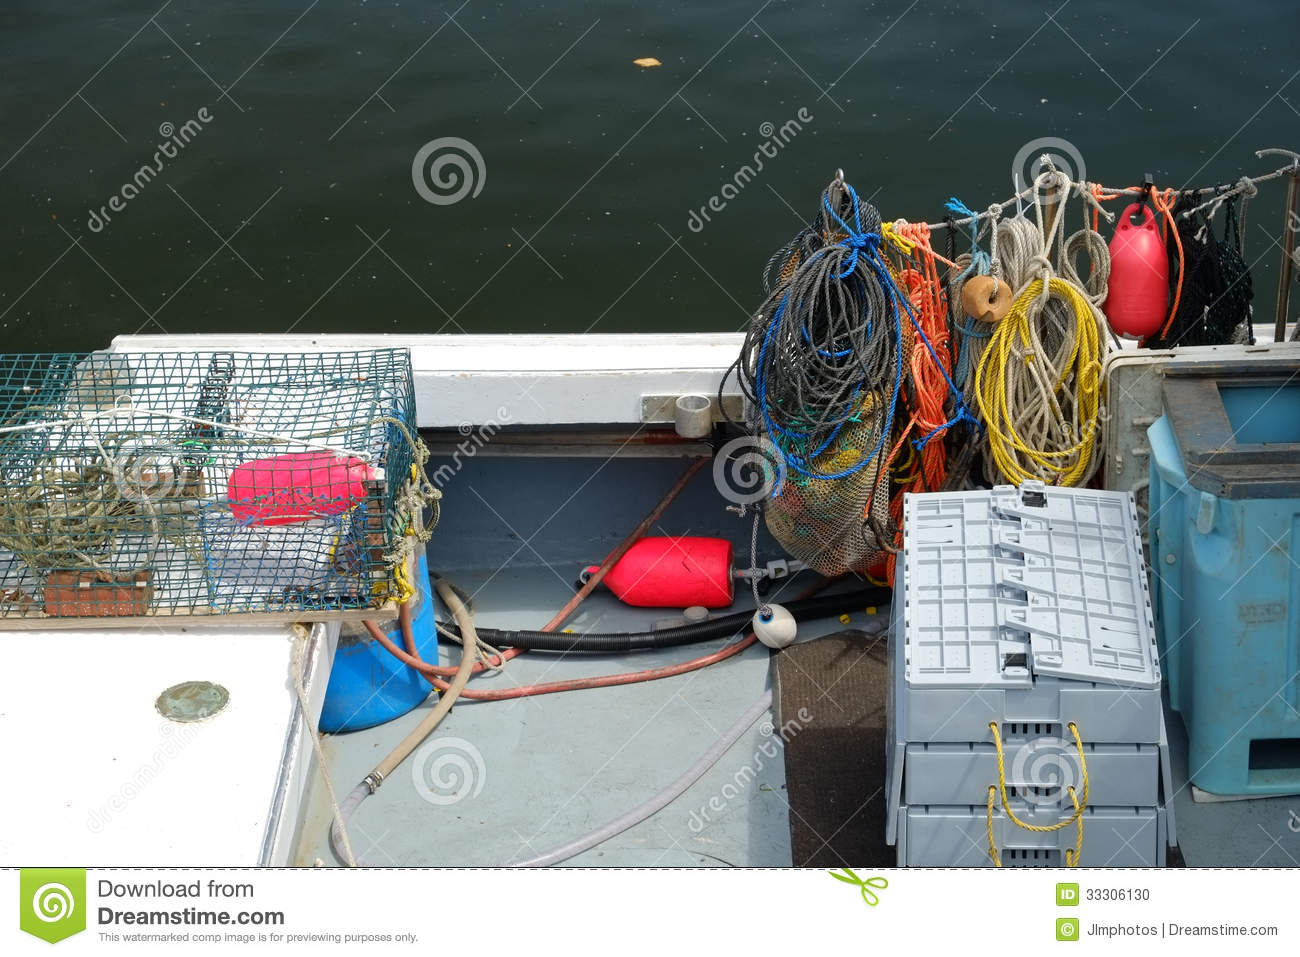 Lobster Boat Deck Stock Photo - Image: 33306130